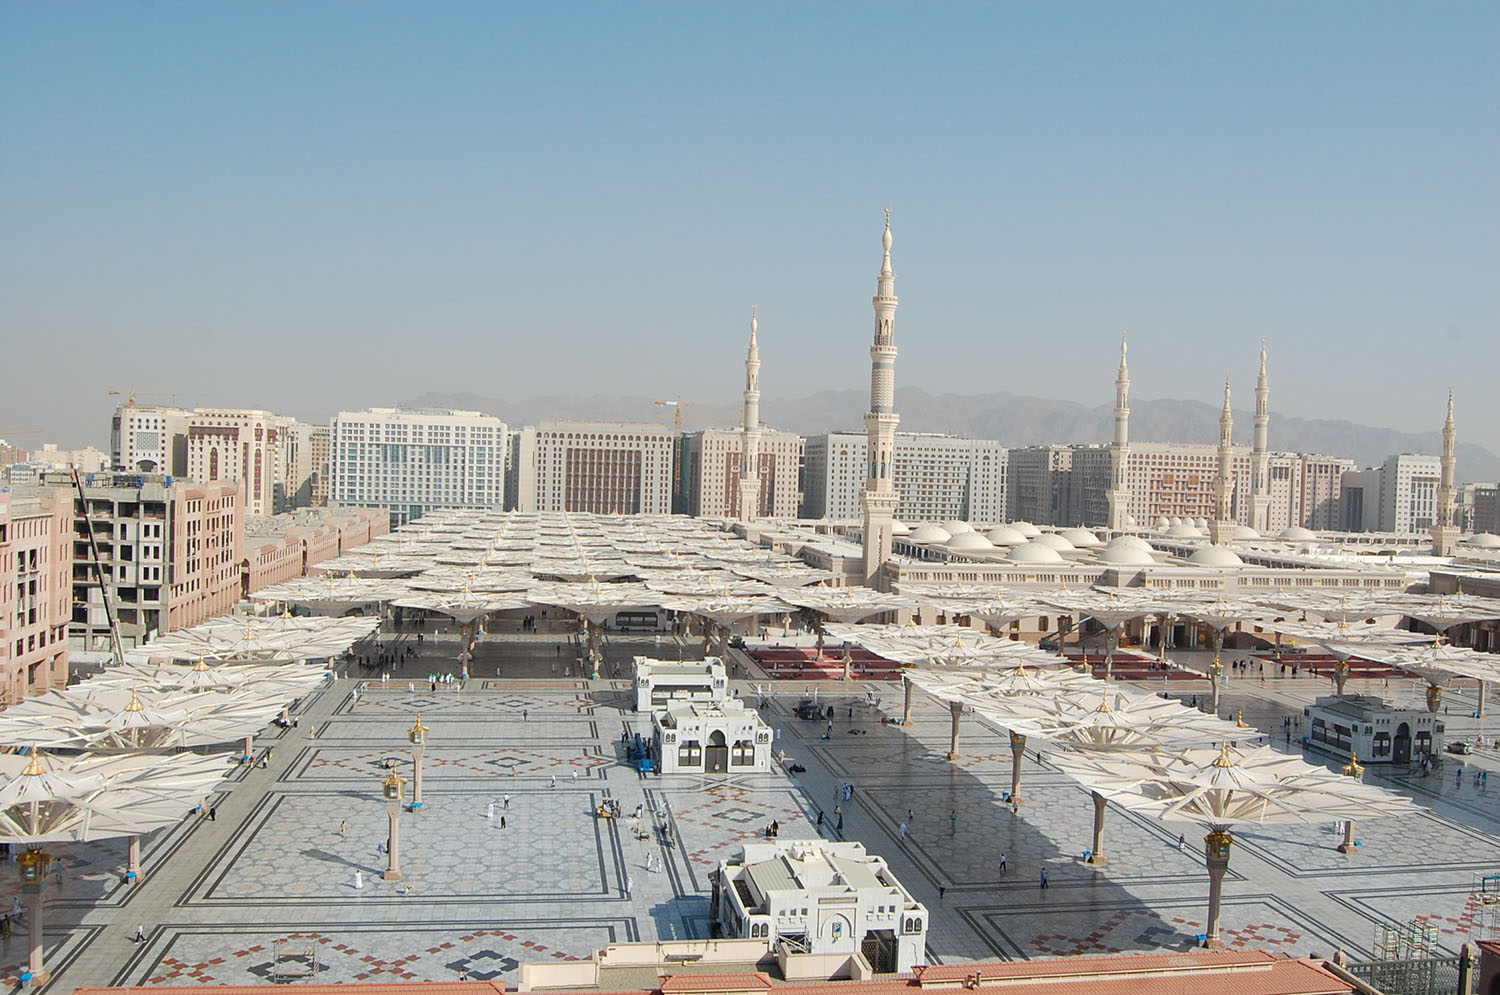 Massive five and even seven-star hotels surround the Masjid al-Nabi. The majority of pilgrims cannot afford them. Many dare not enter.